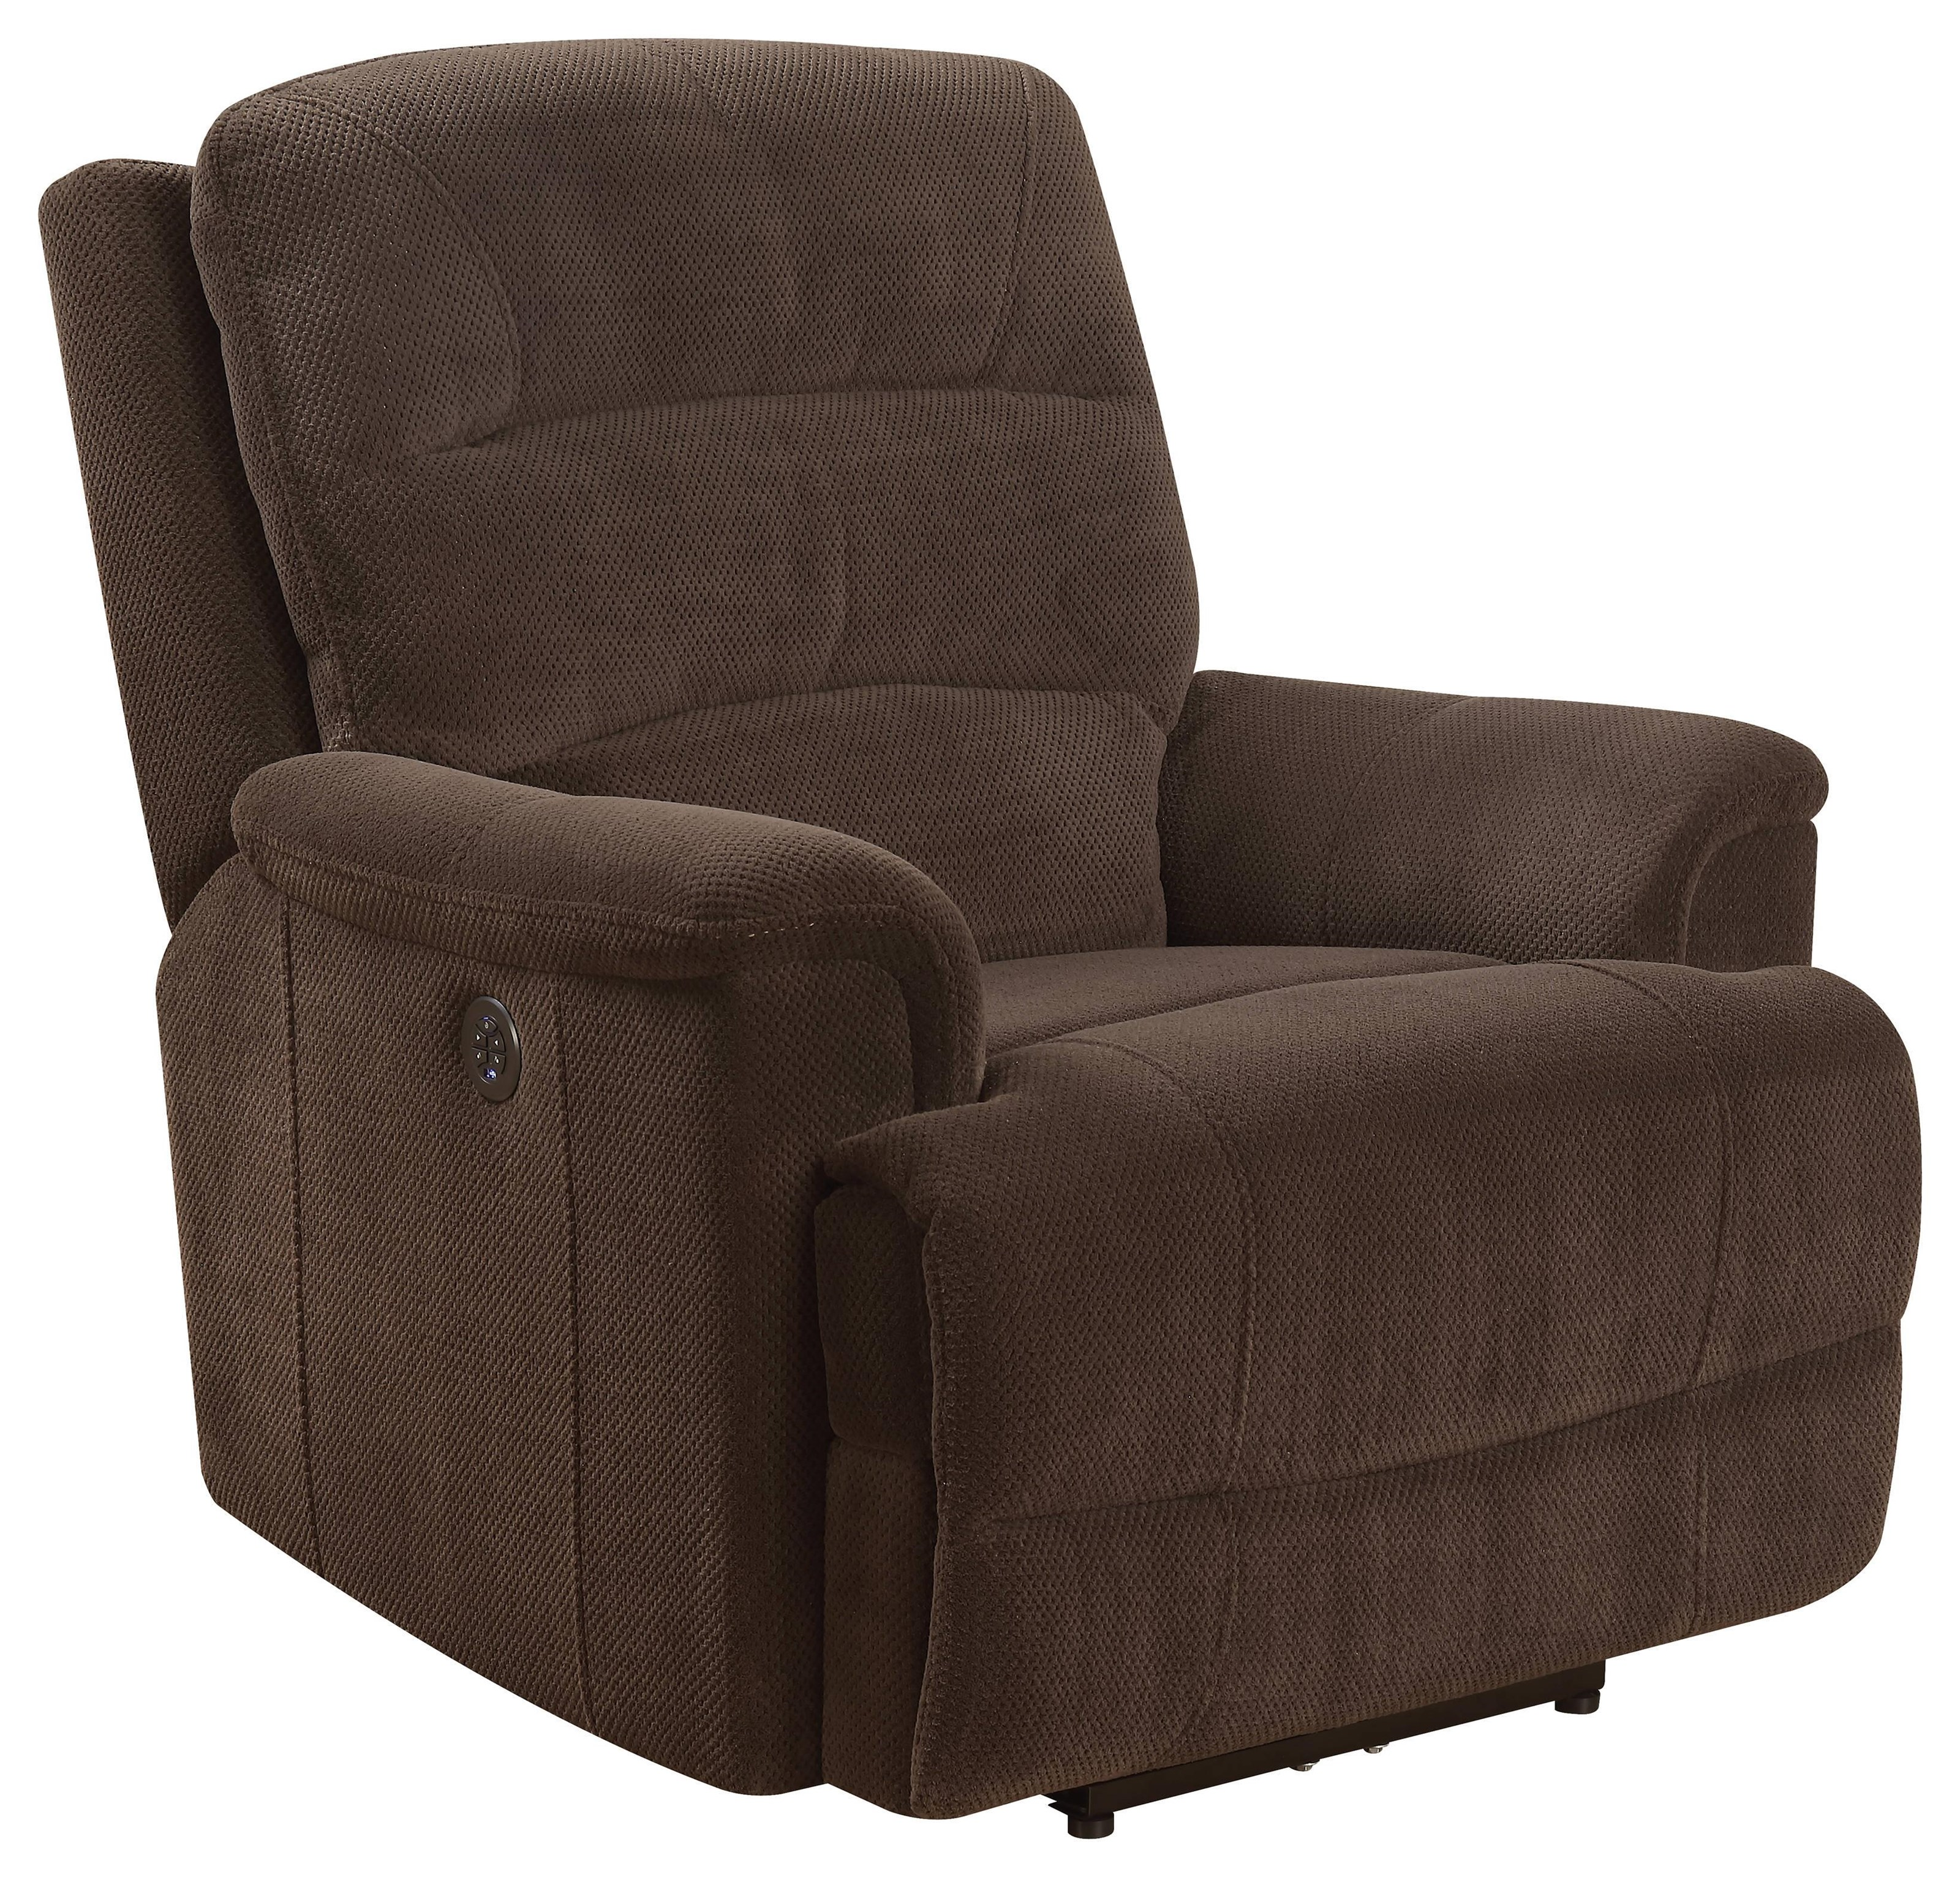 Nibley Nibley Power Recliner with Power Head Rest by Prime Resources International at Morris Home